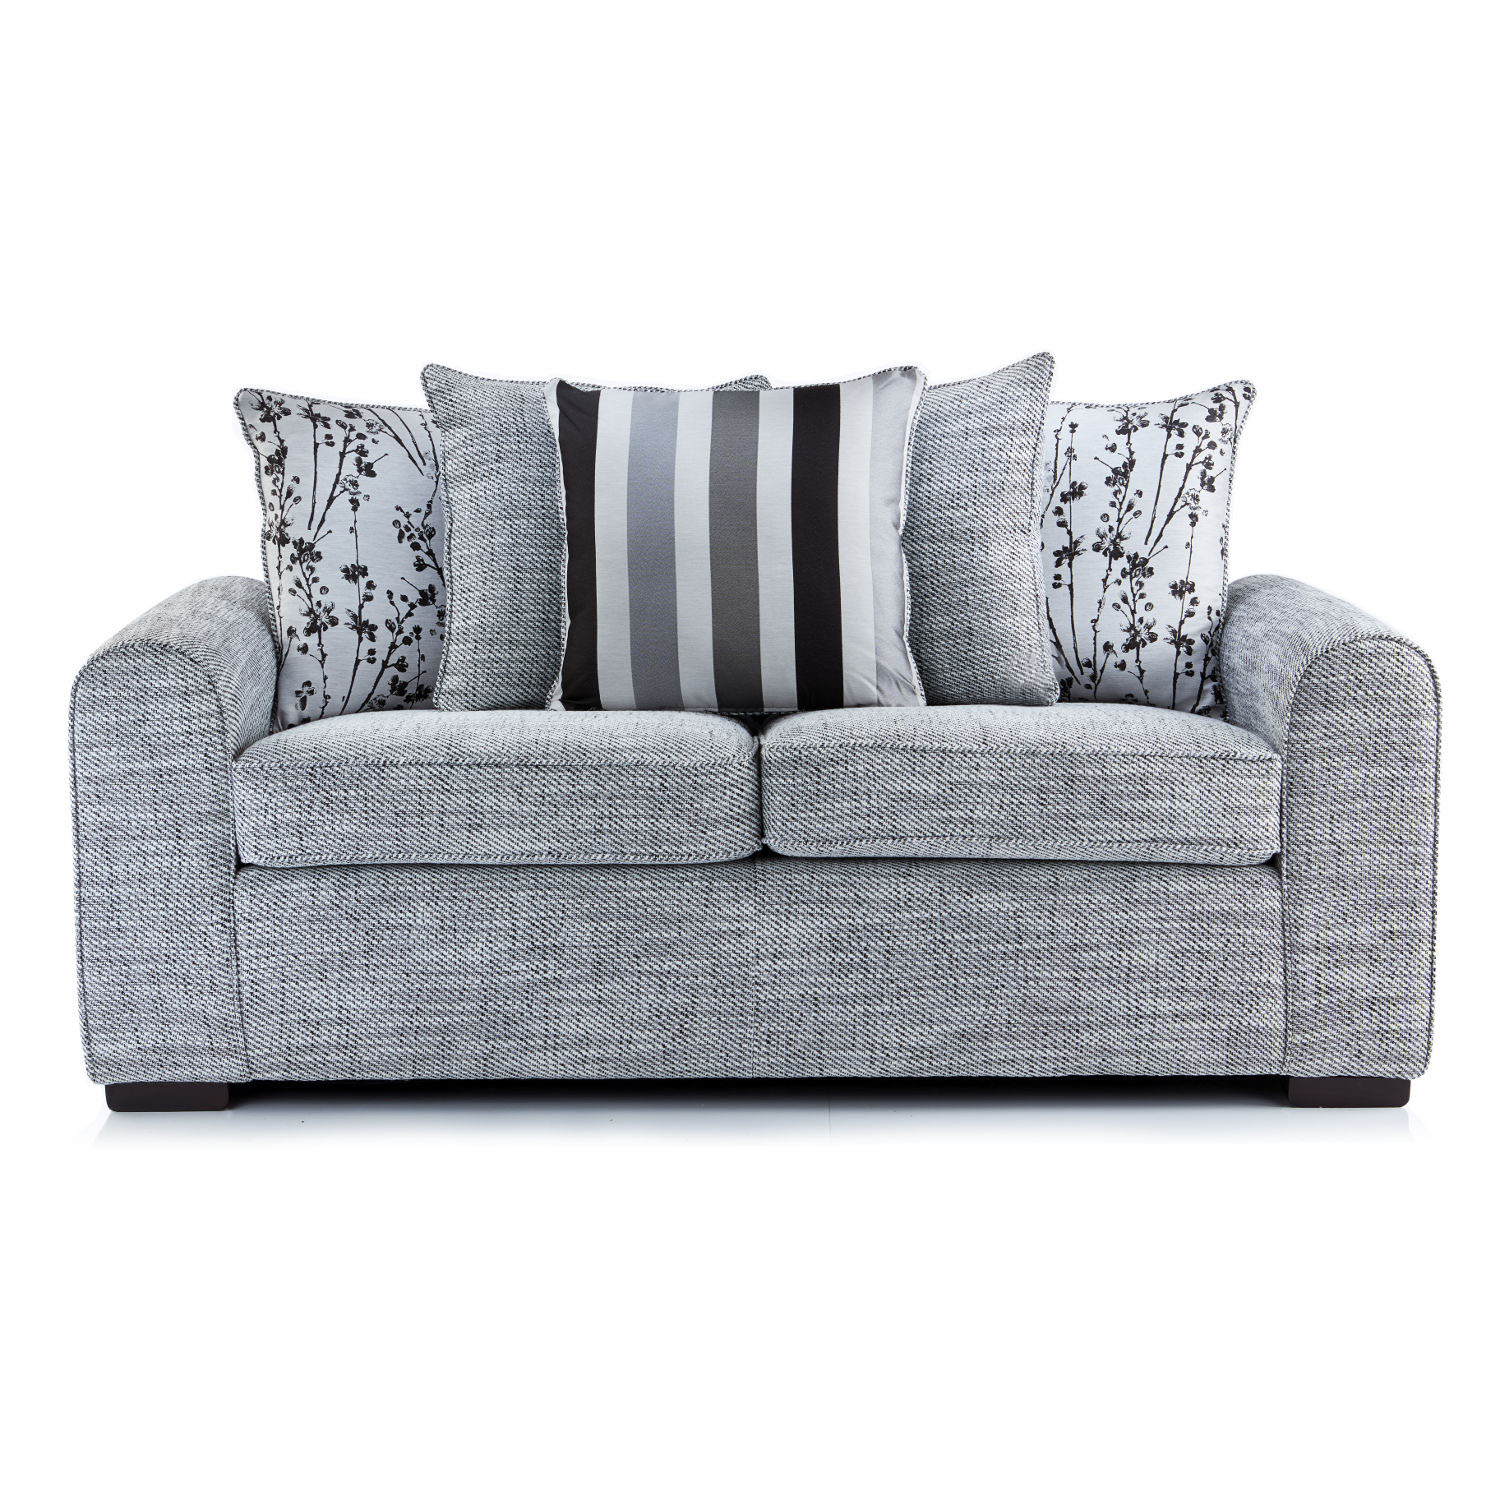 Kenya 3 Seater Fabric Sofa